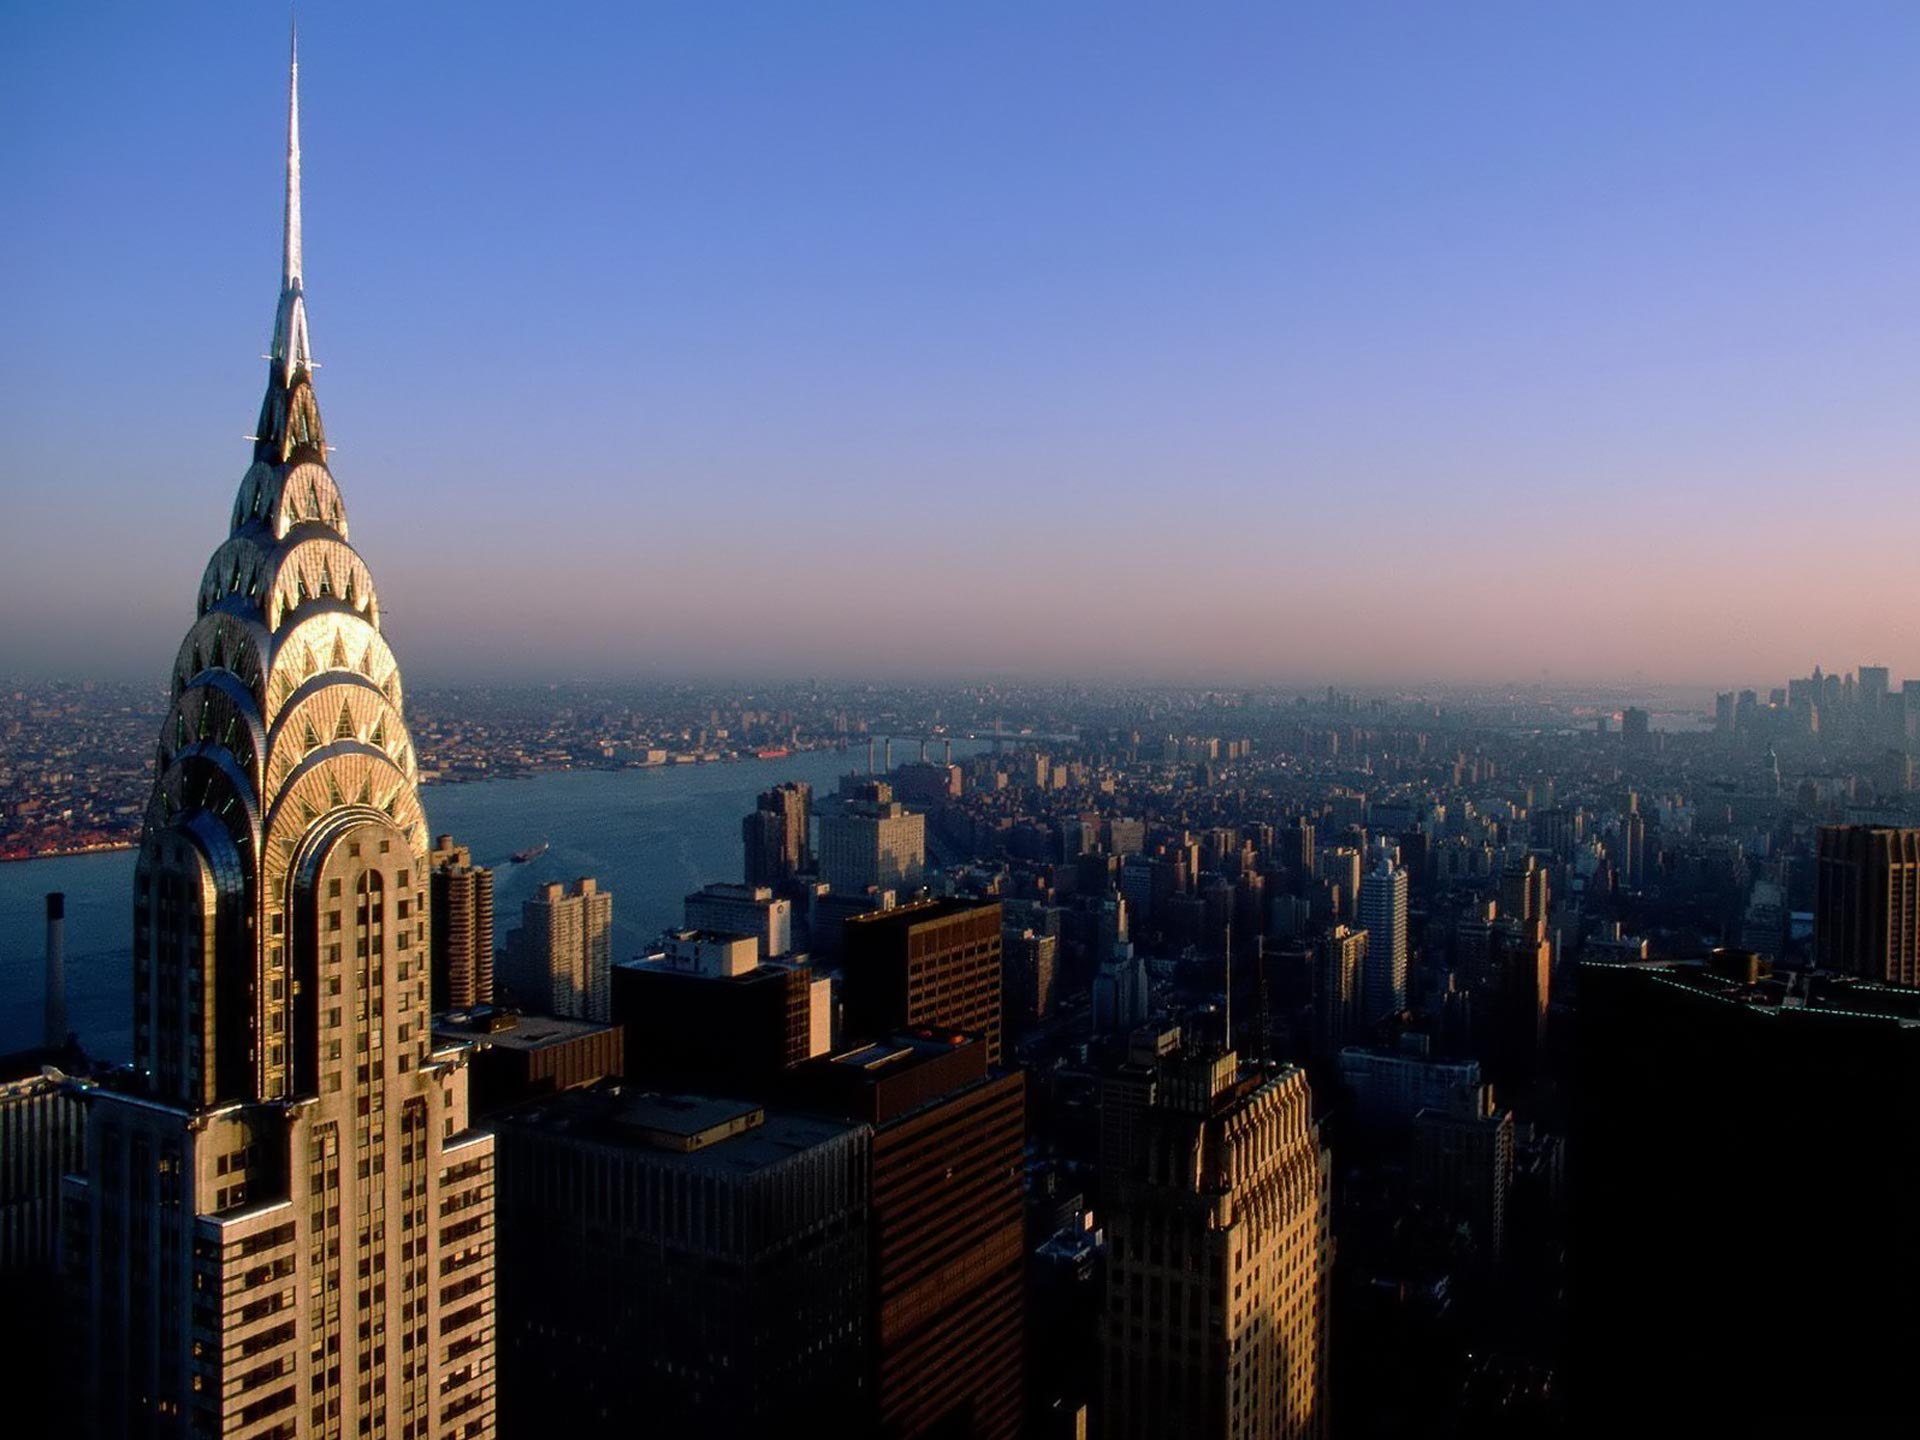 Hd New York City Wallpapers Backgrounds For Free Download 1920x1440